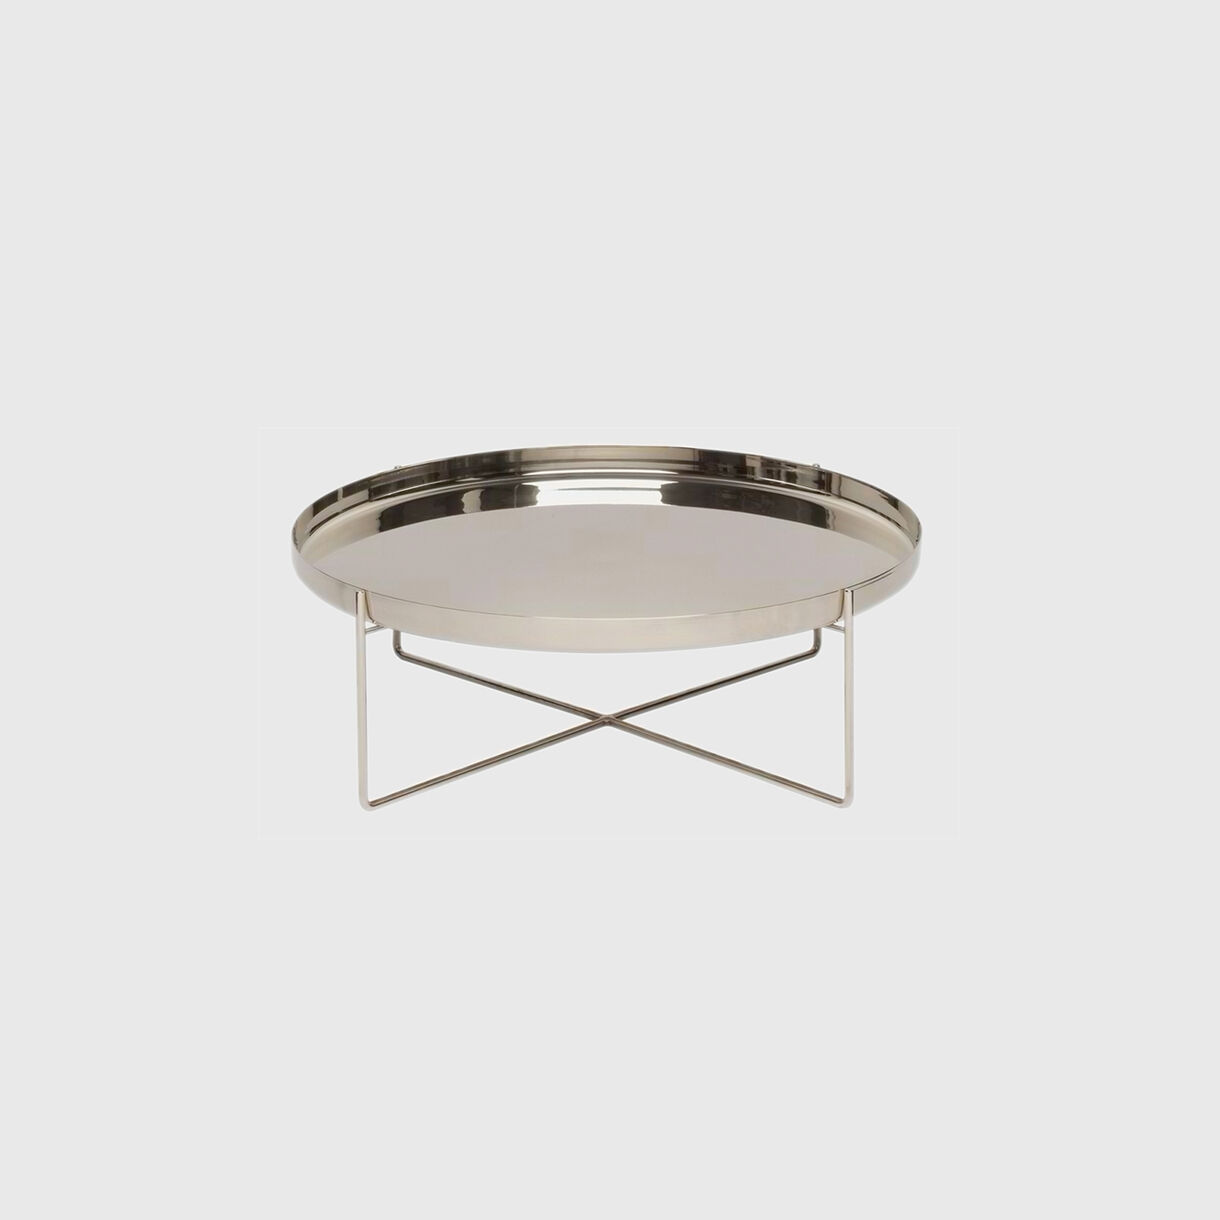 Habibi Low Side Table, Large, Stainless Steel